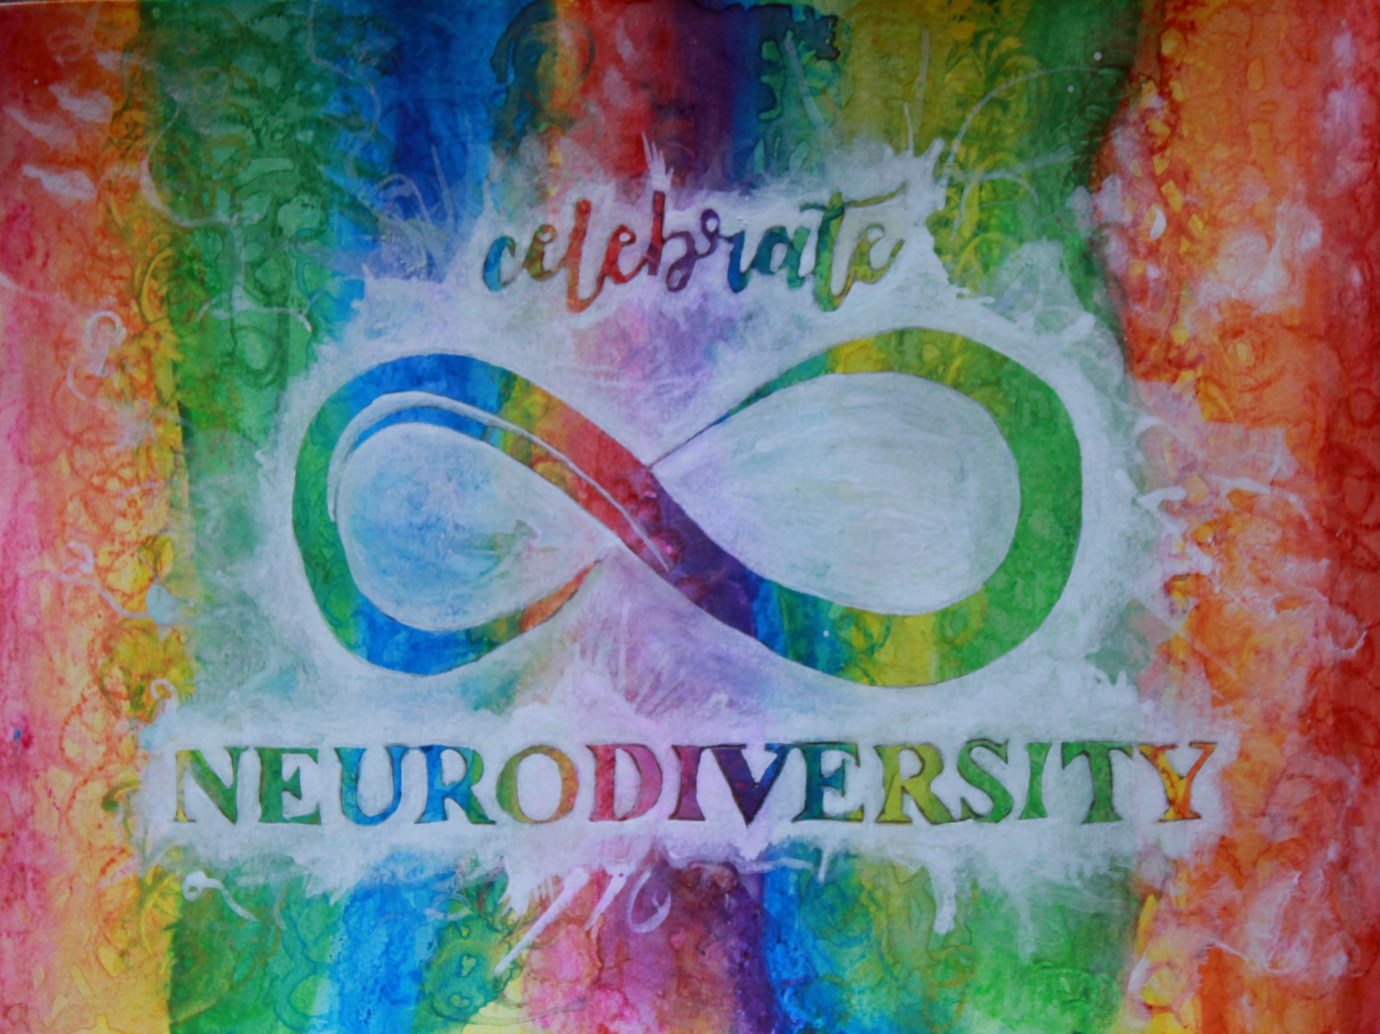 """the background has vertical watercolor stripes that blend together in a rainbow pattern. The foreground shows the neurodiversity infinity symbol, with the word """"celebrate"""" above and """"neurodiversity"""" below, from white semi-transparent acrylic paint. It looks like a white splash on a rainbow background with the words and symbols unpainted, so that the words and symbol have the same rainbow coloring as the background via negative space."""